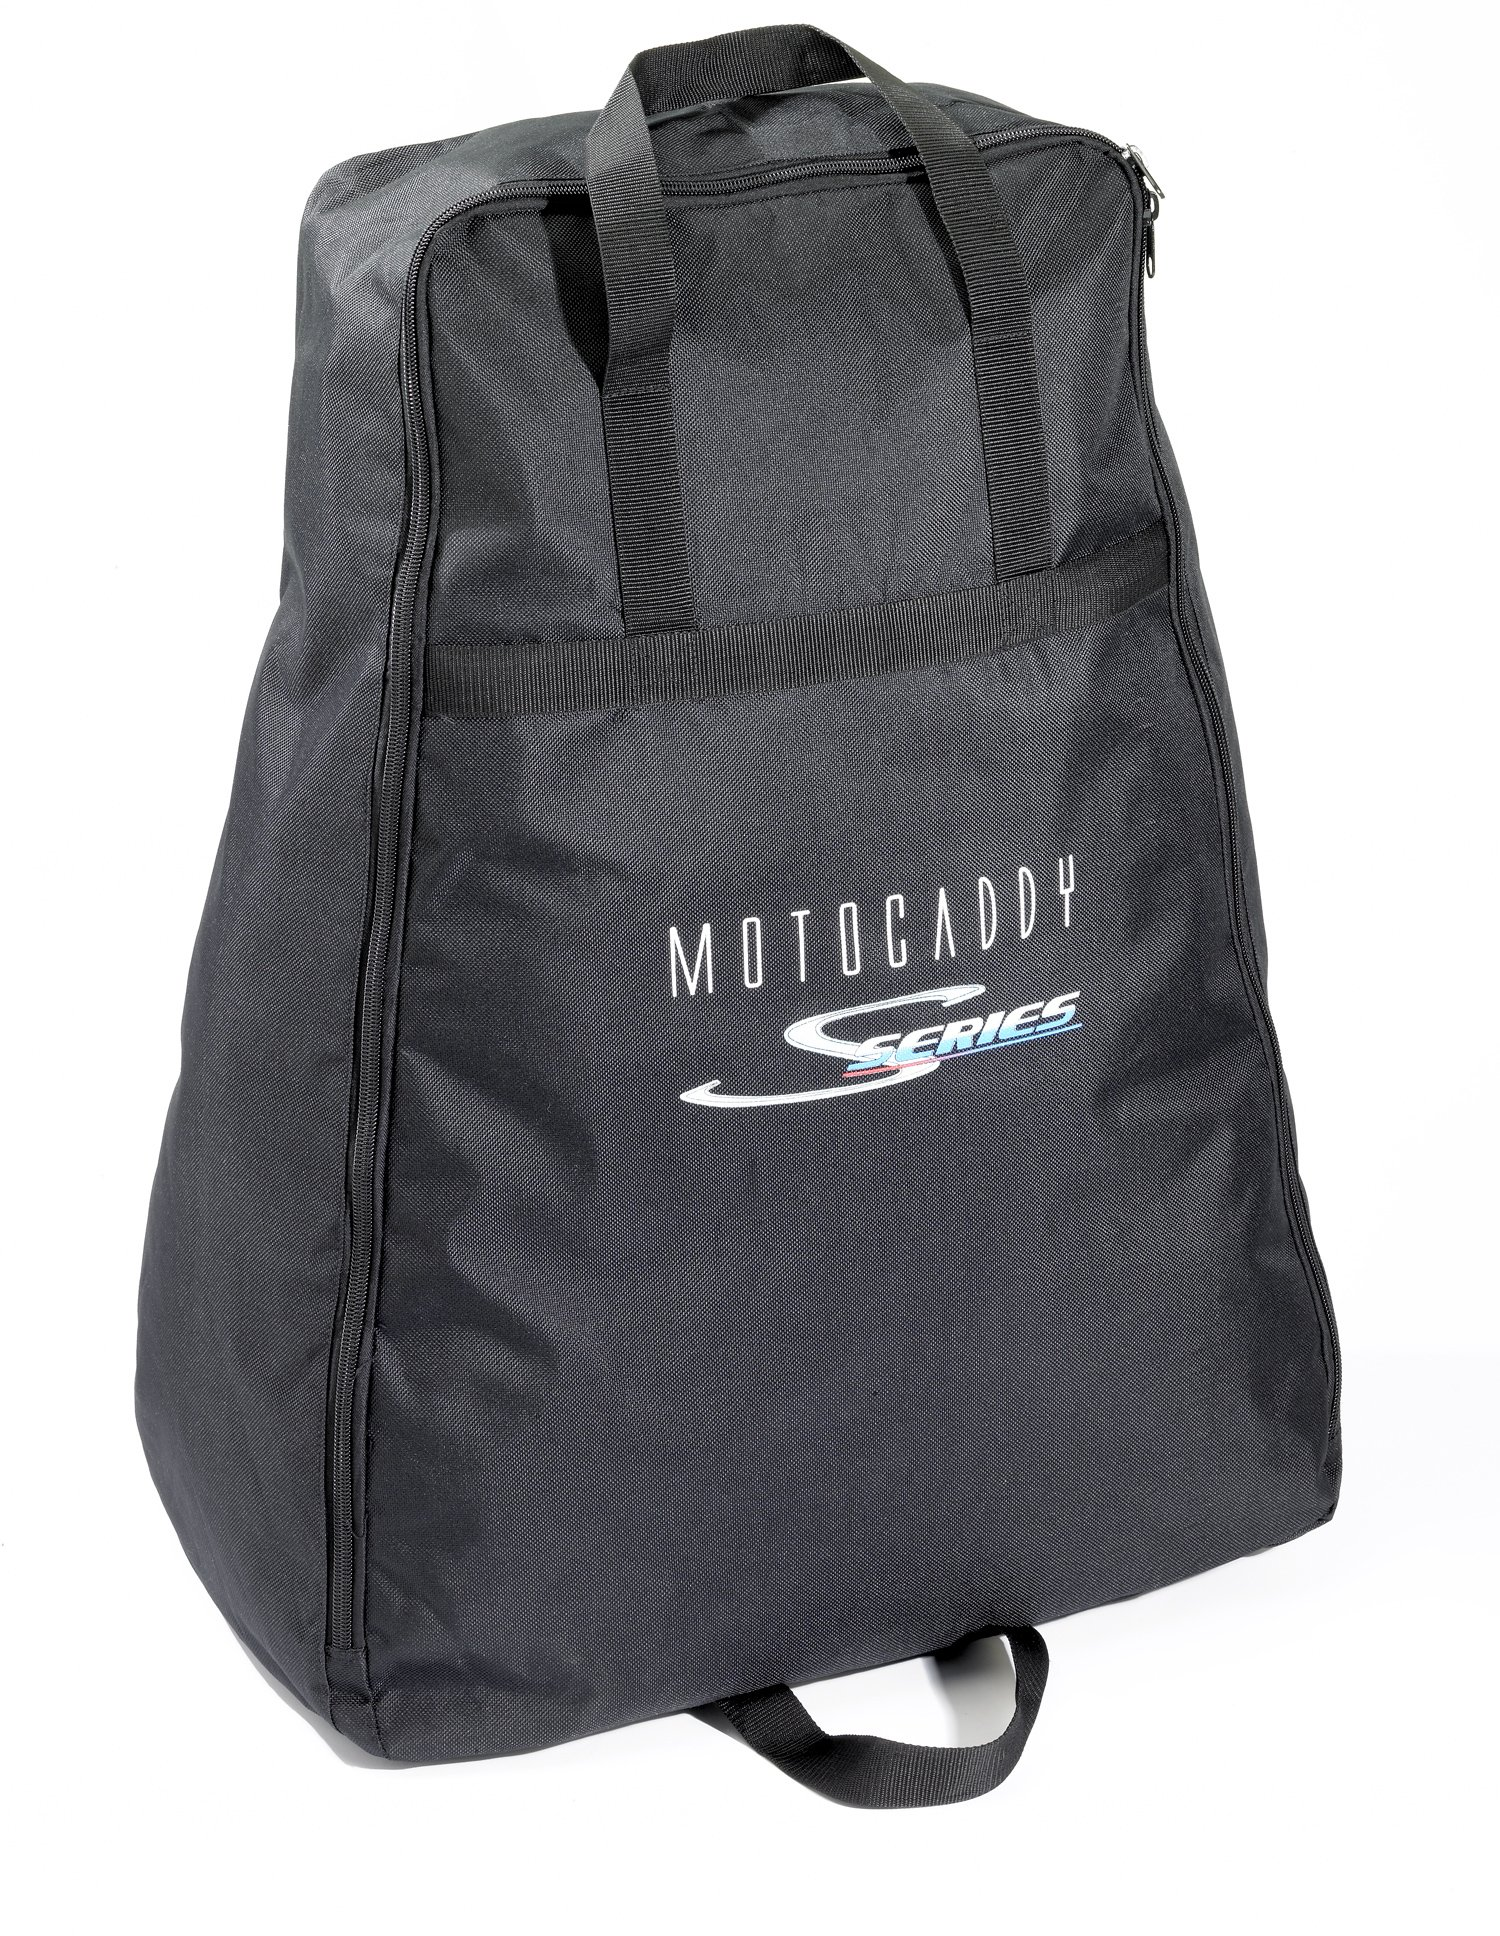 Motocaddy S-Series Golf Travel Cover